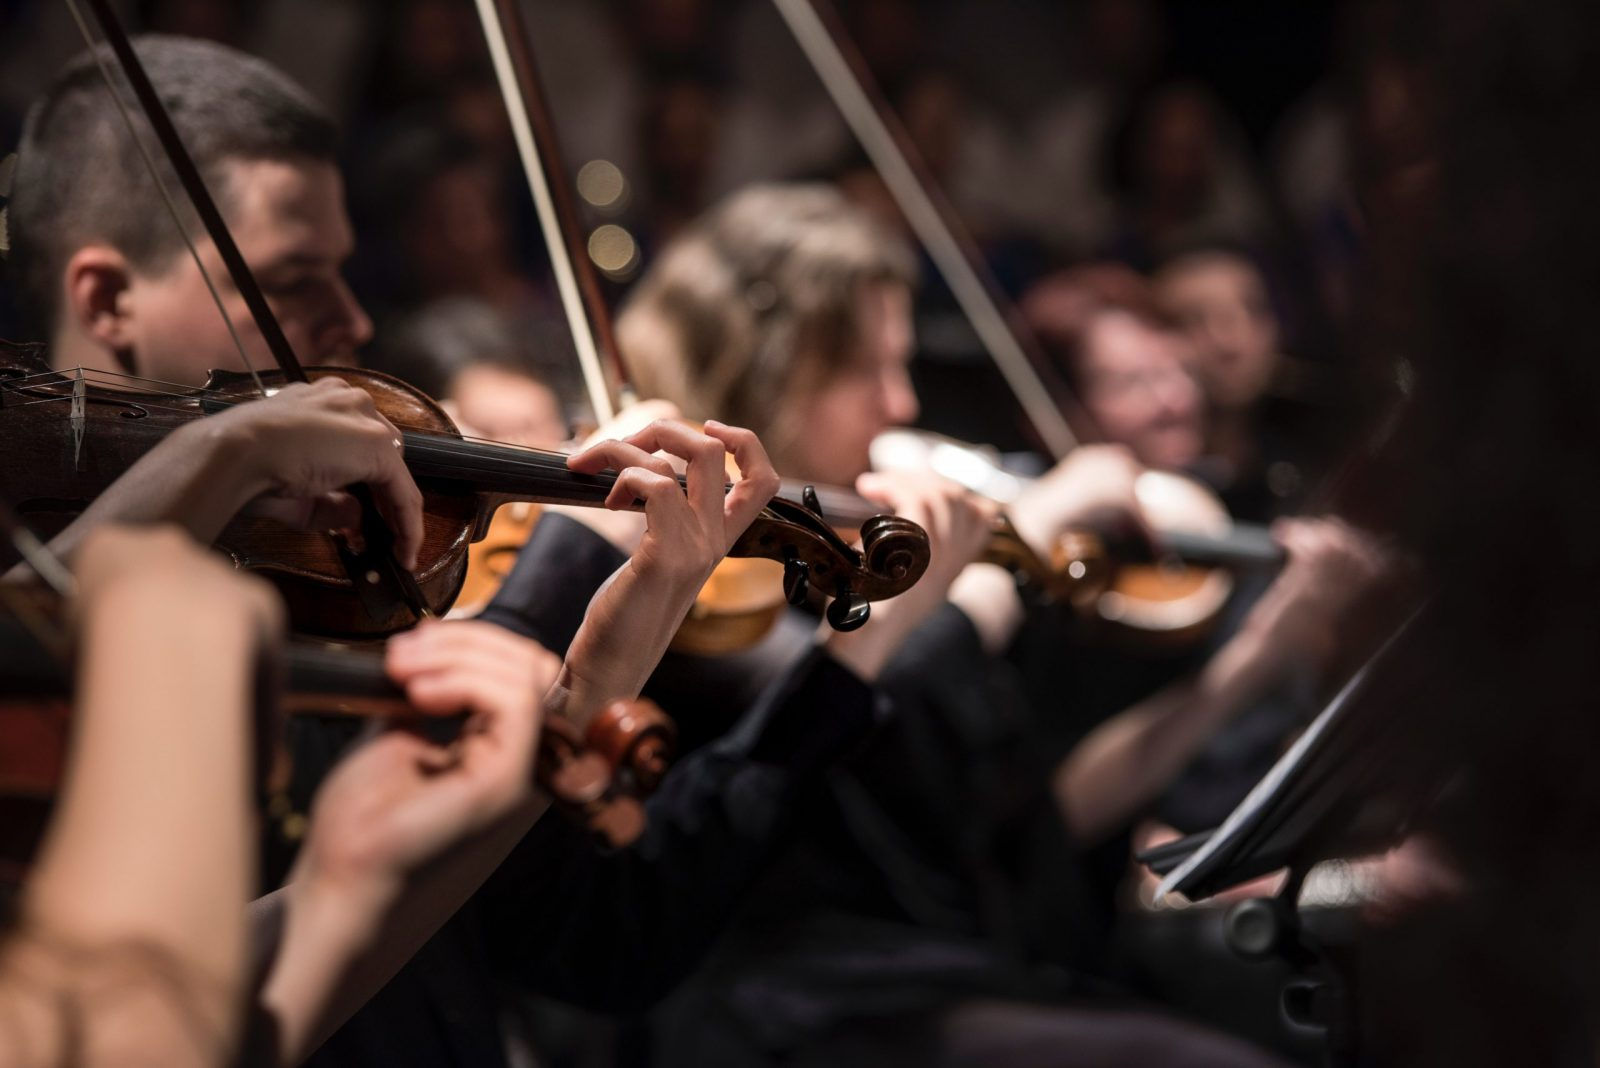 Image of orchestra playing to illustrate the metaphor of play in a professional environment